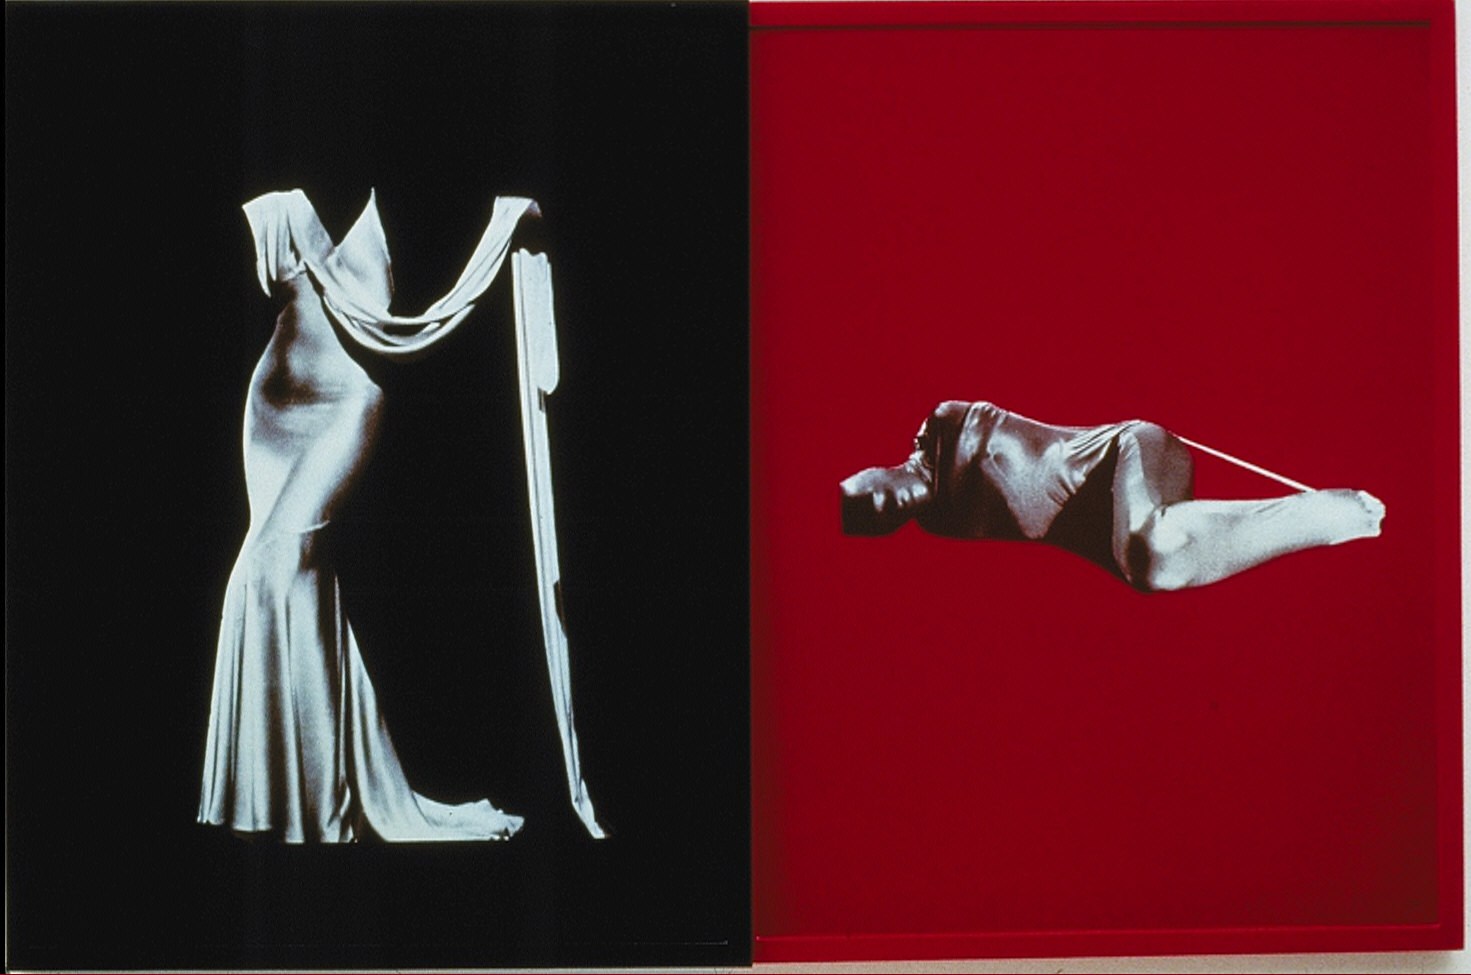 Figures from the series 'Objects of Desire I'